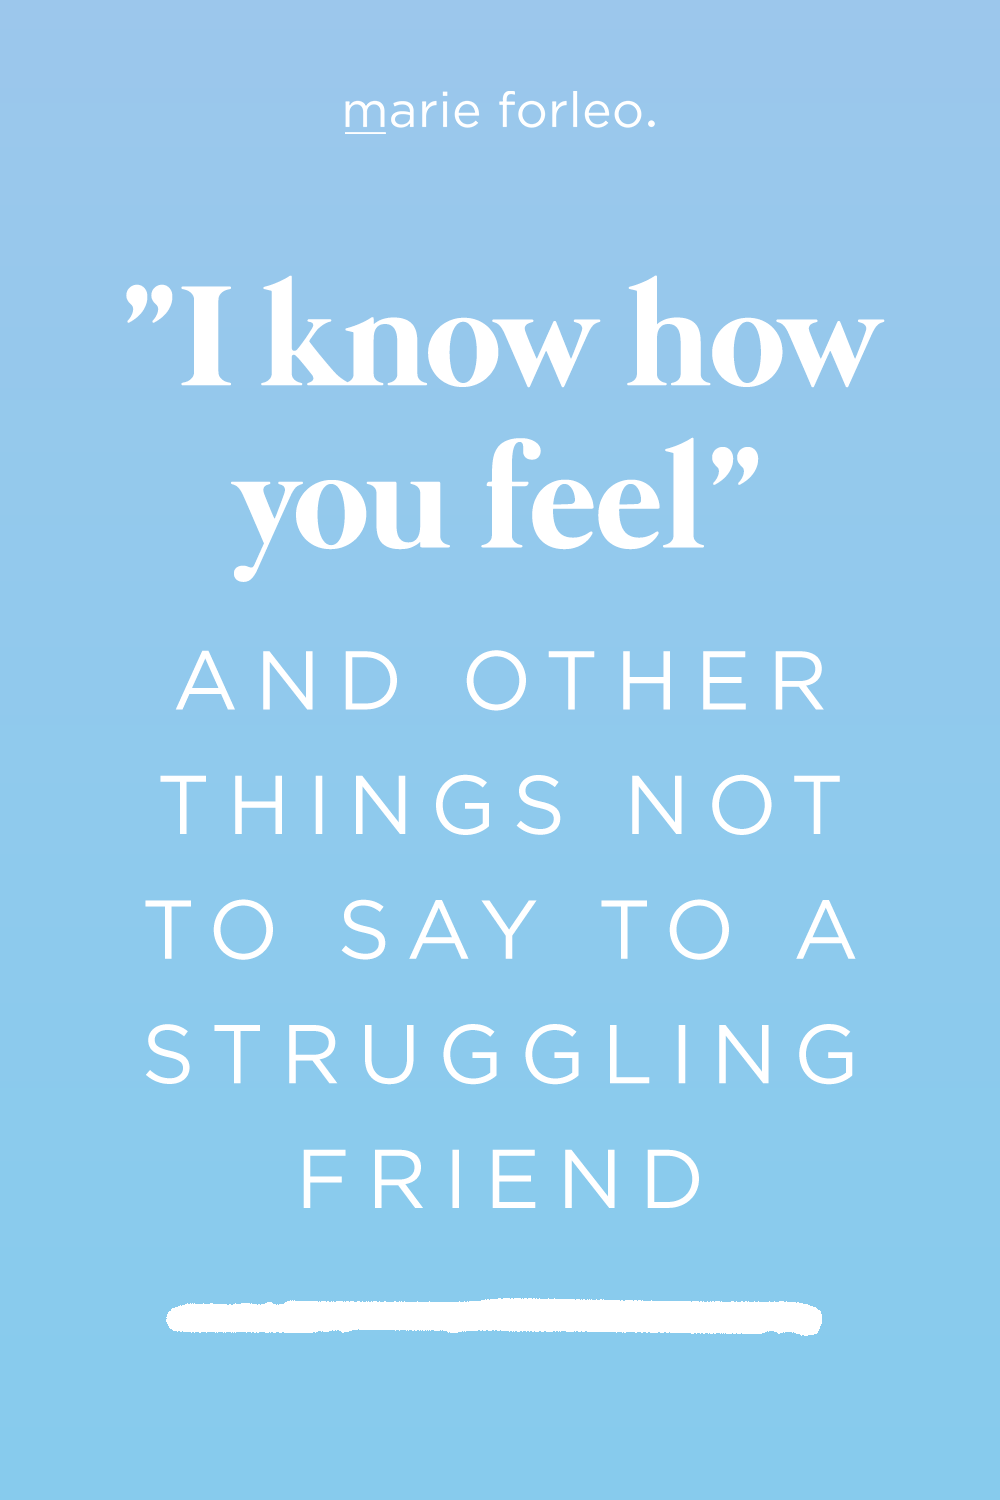 20 of The Best (and Worst) Words of Comfort Words of